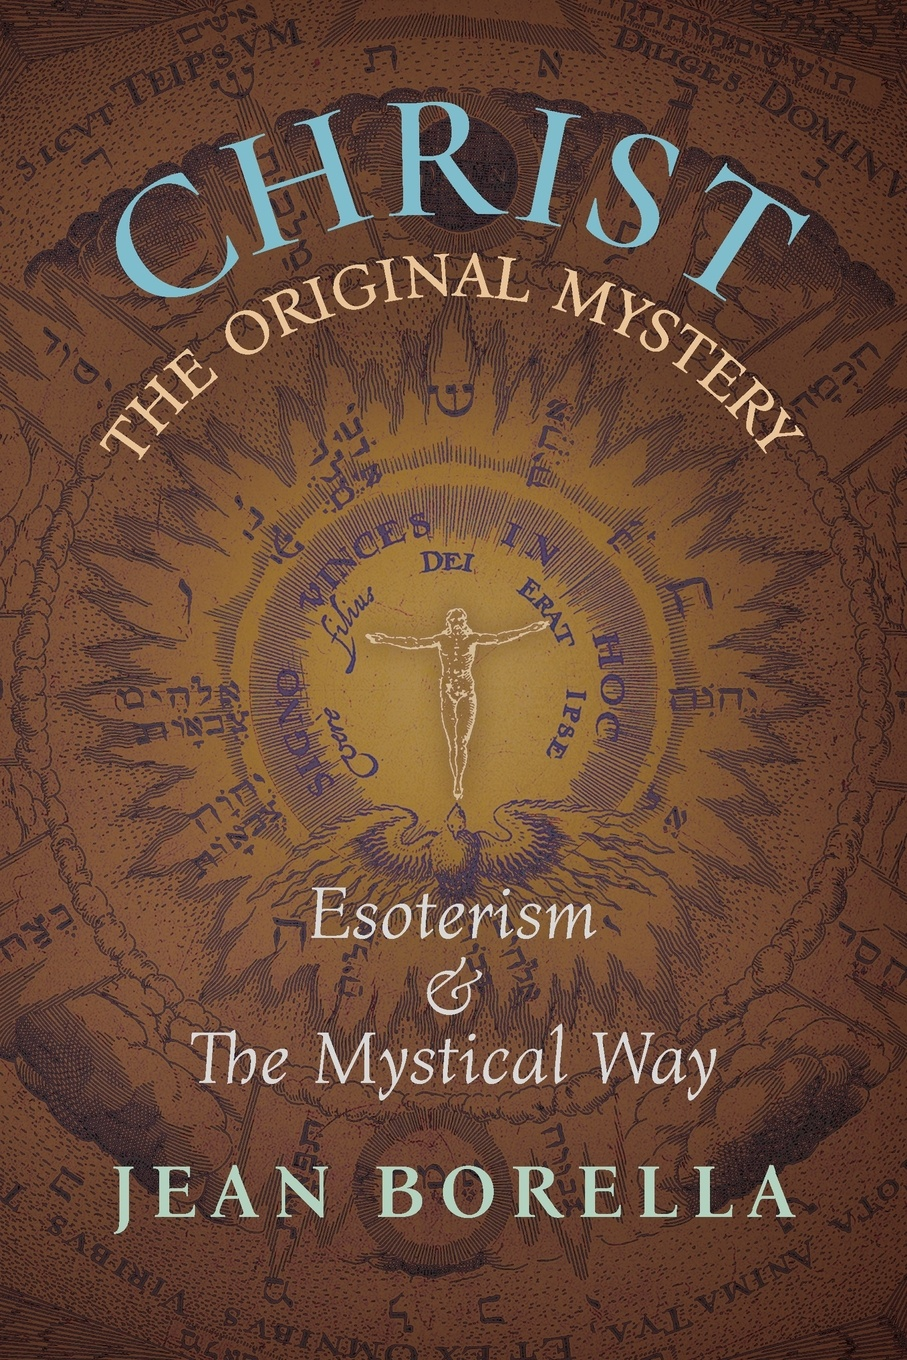 Jean Borella, G. John Champoux Christ the Original Mystery. Esoterism and the Mystical Way, With Special Reference to the Works of Rene Guenon john bigelow the mystery of sleep